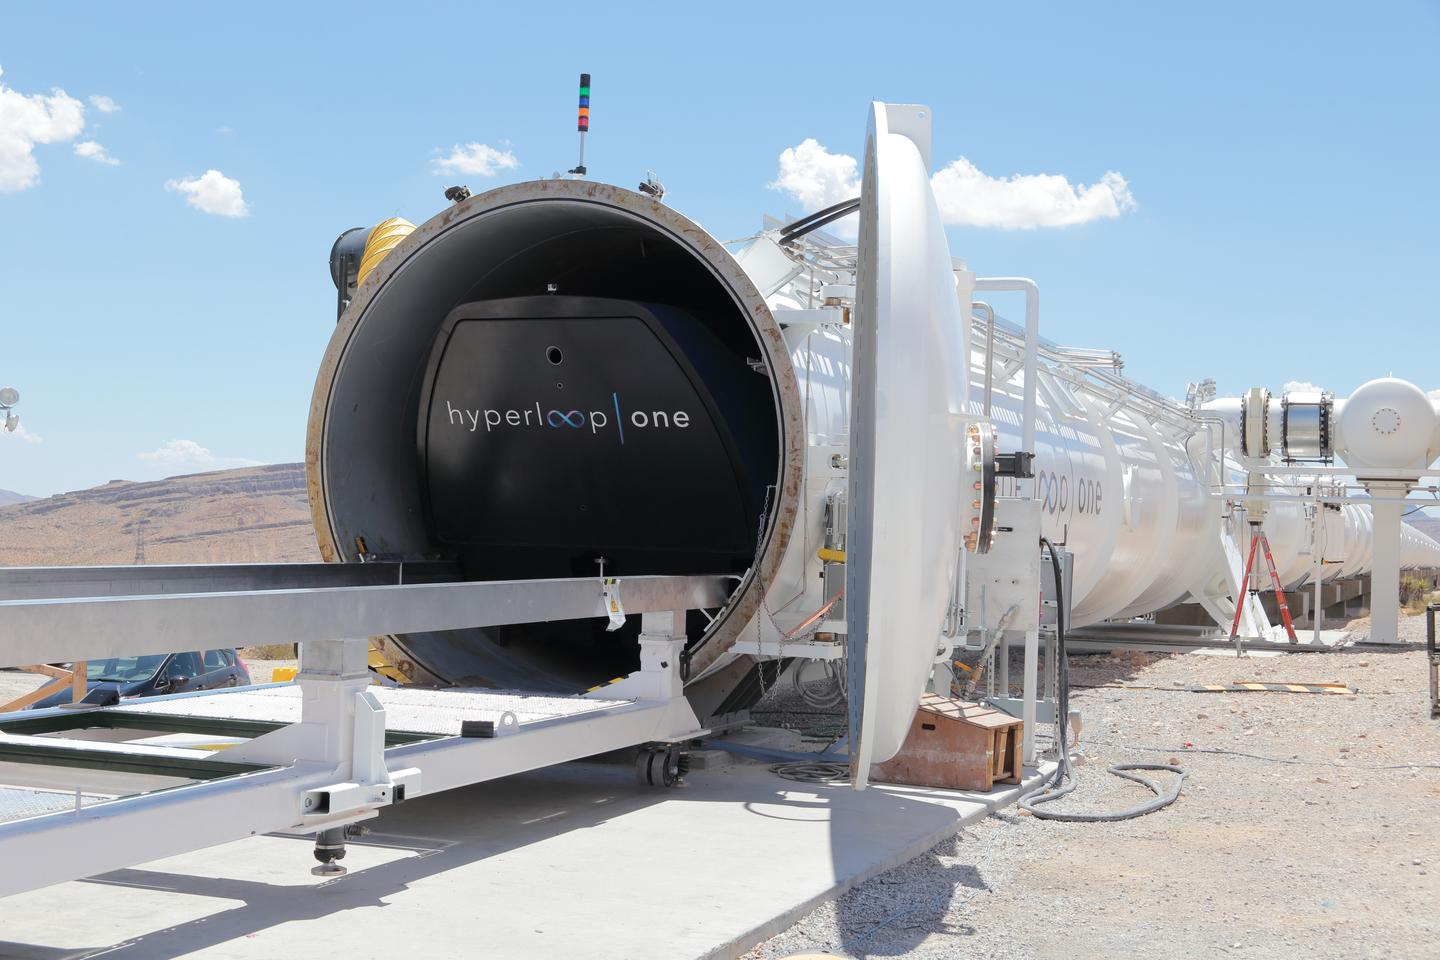 Hyperloop One's XP-1 pod enters the tube at the company's test facility